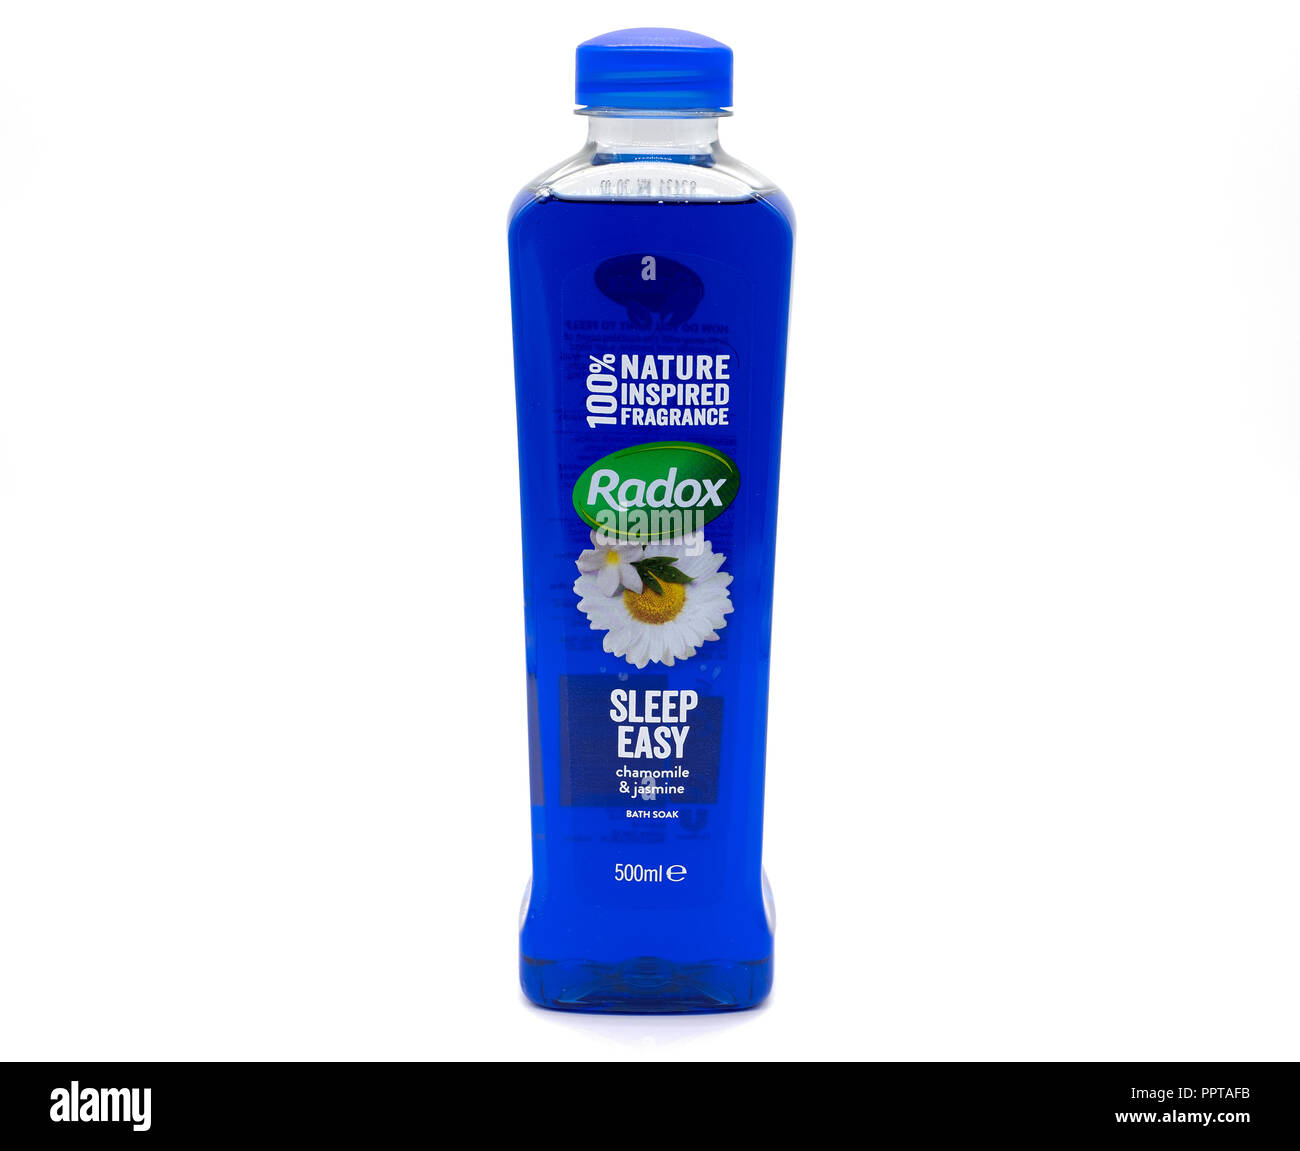 Largs, Scotland, UK - September 27, 2018: A bootle of Radox Sleep Easy bath Soak in recyclable Plastic Bottle. - Stock Image